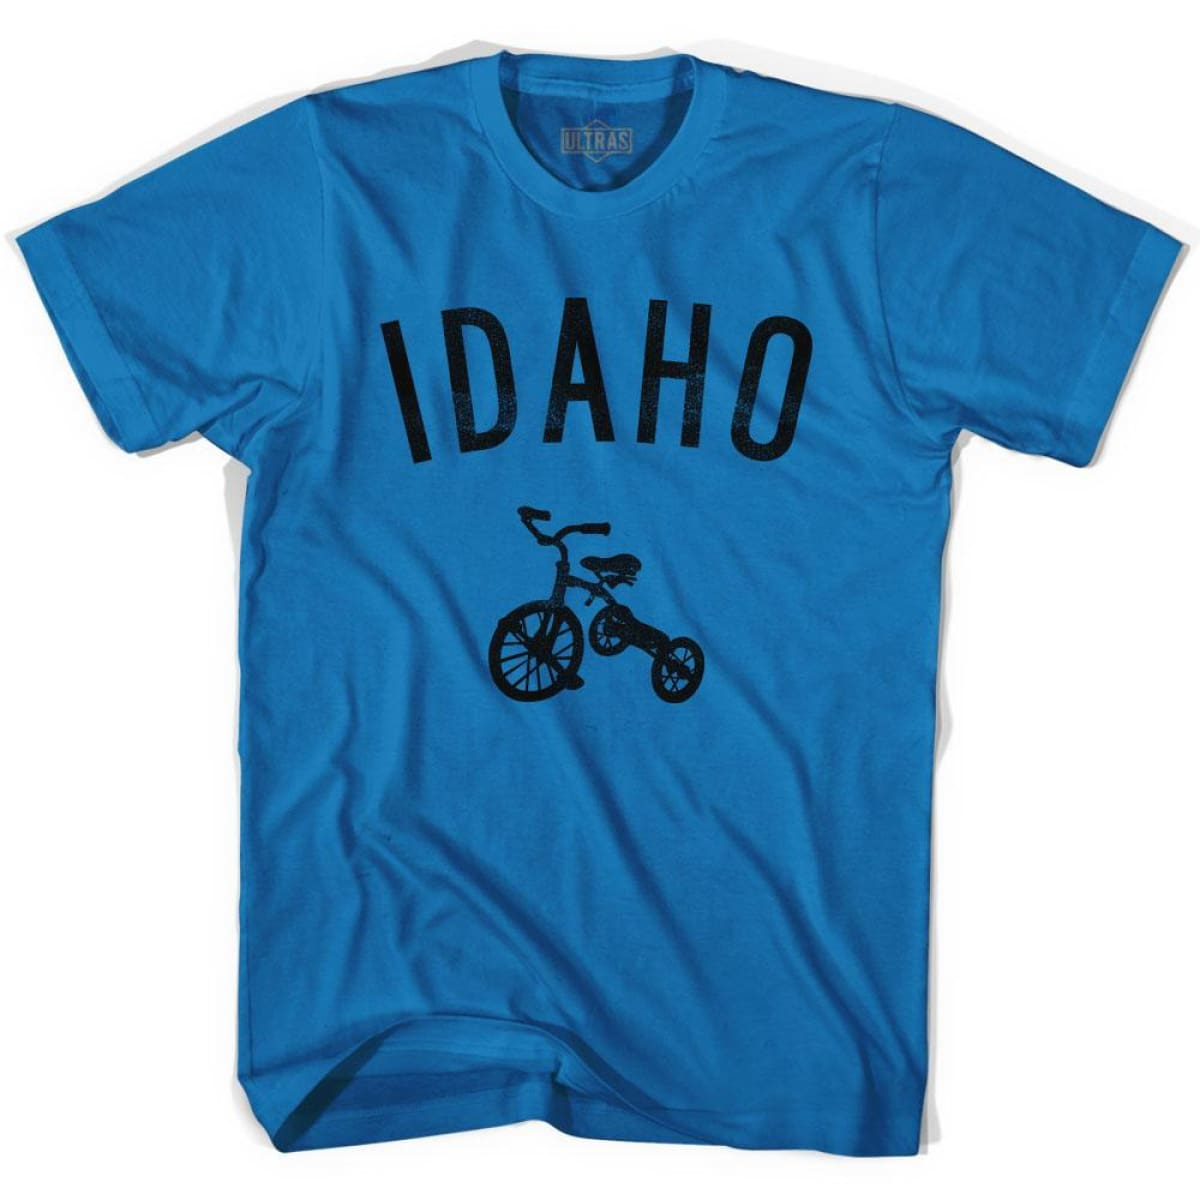 Idaho State Tricycle Adult Cotton T-shirt - Royal / Adult Small - Tricycle State